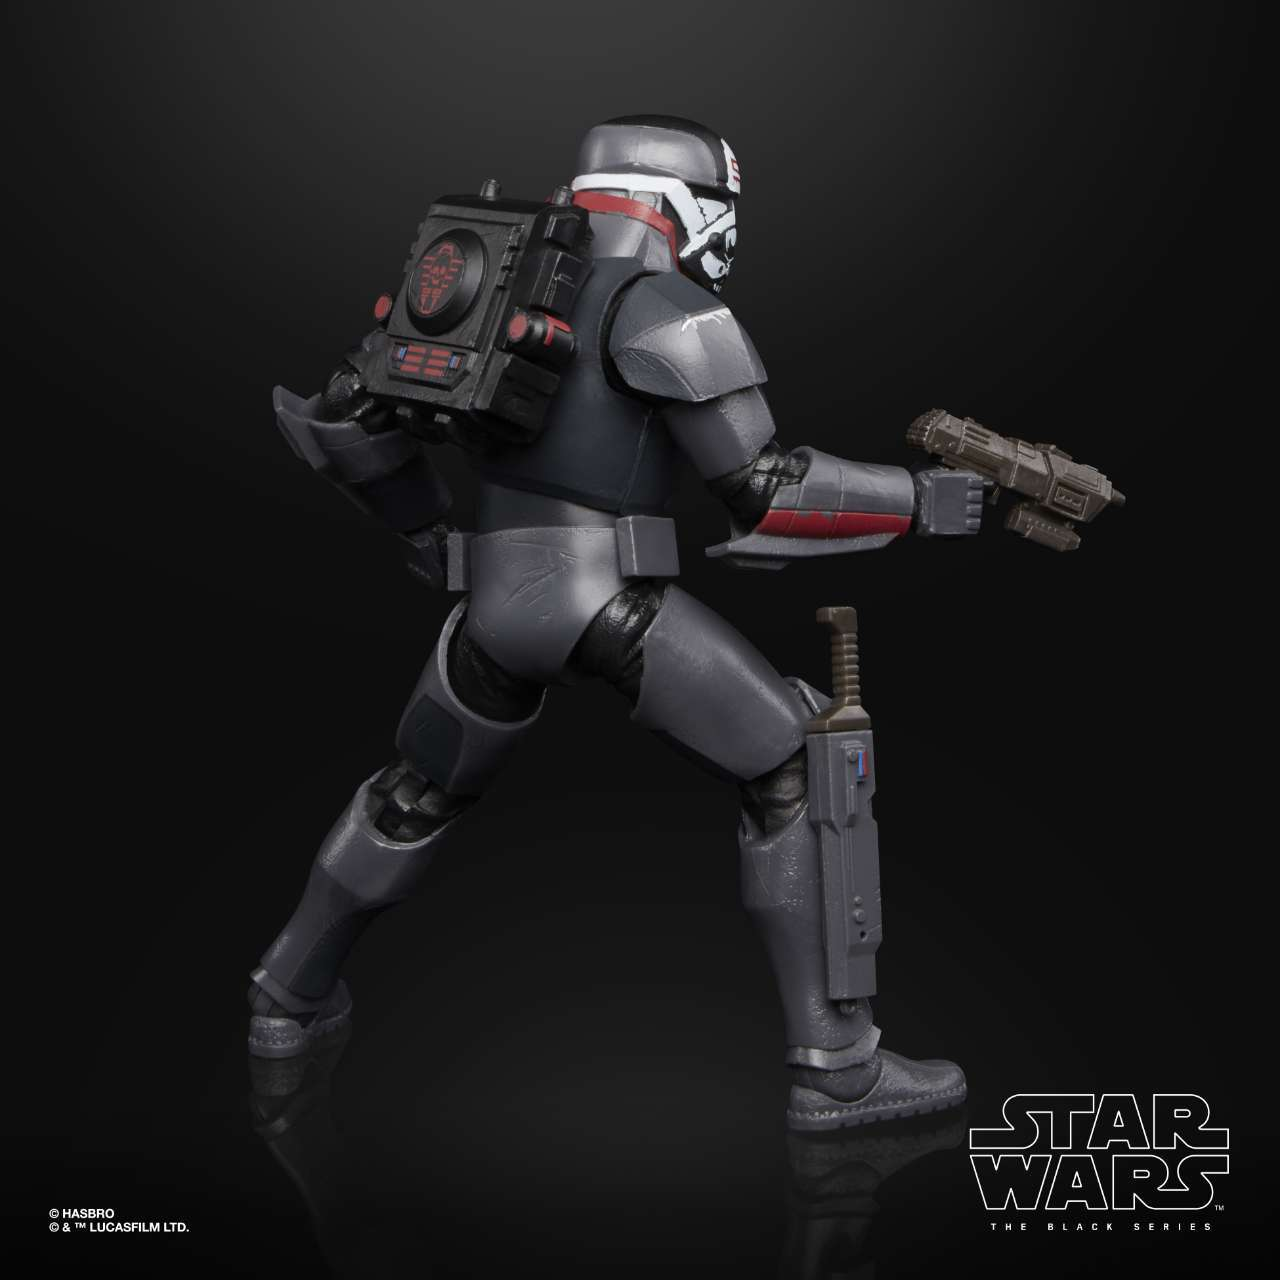 STAR WARS THE BLACK SERIES 6-INCH-SCALE WRECKER Figure - oop (8)